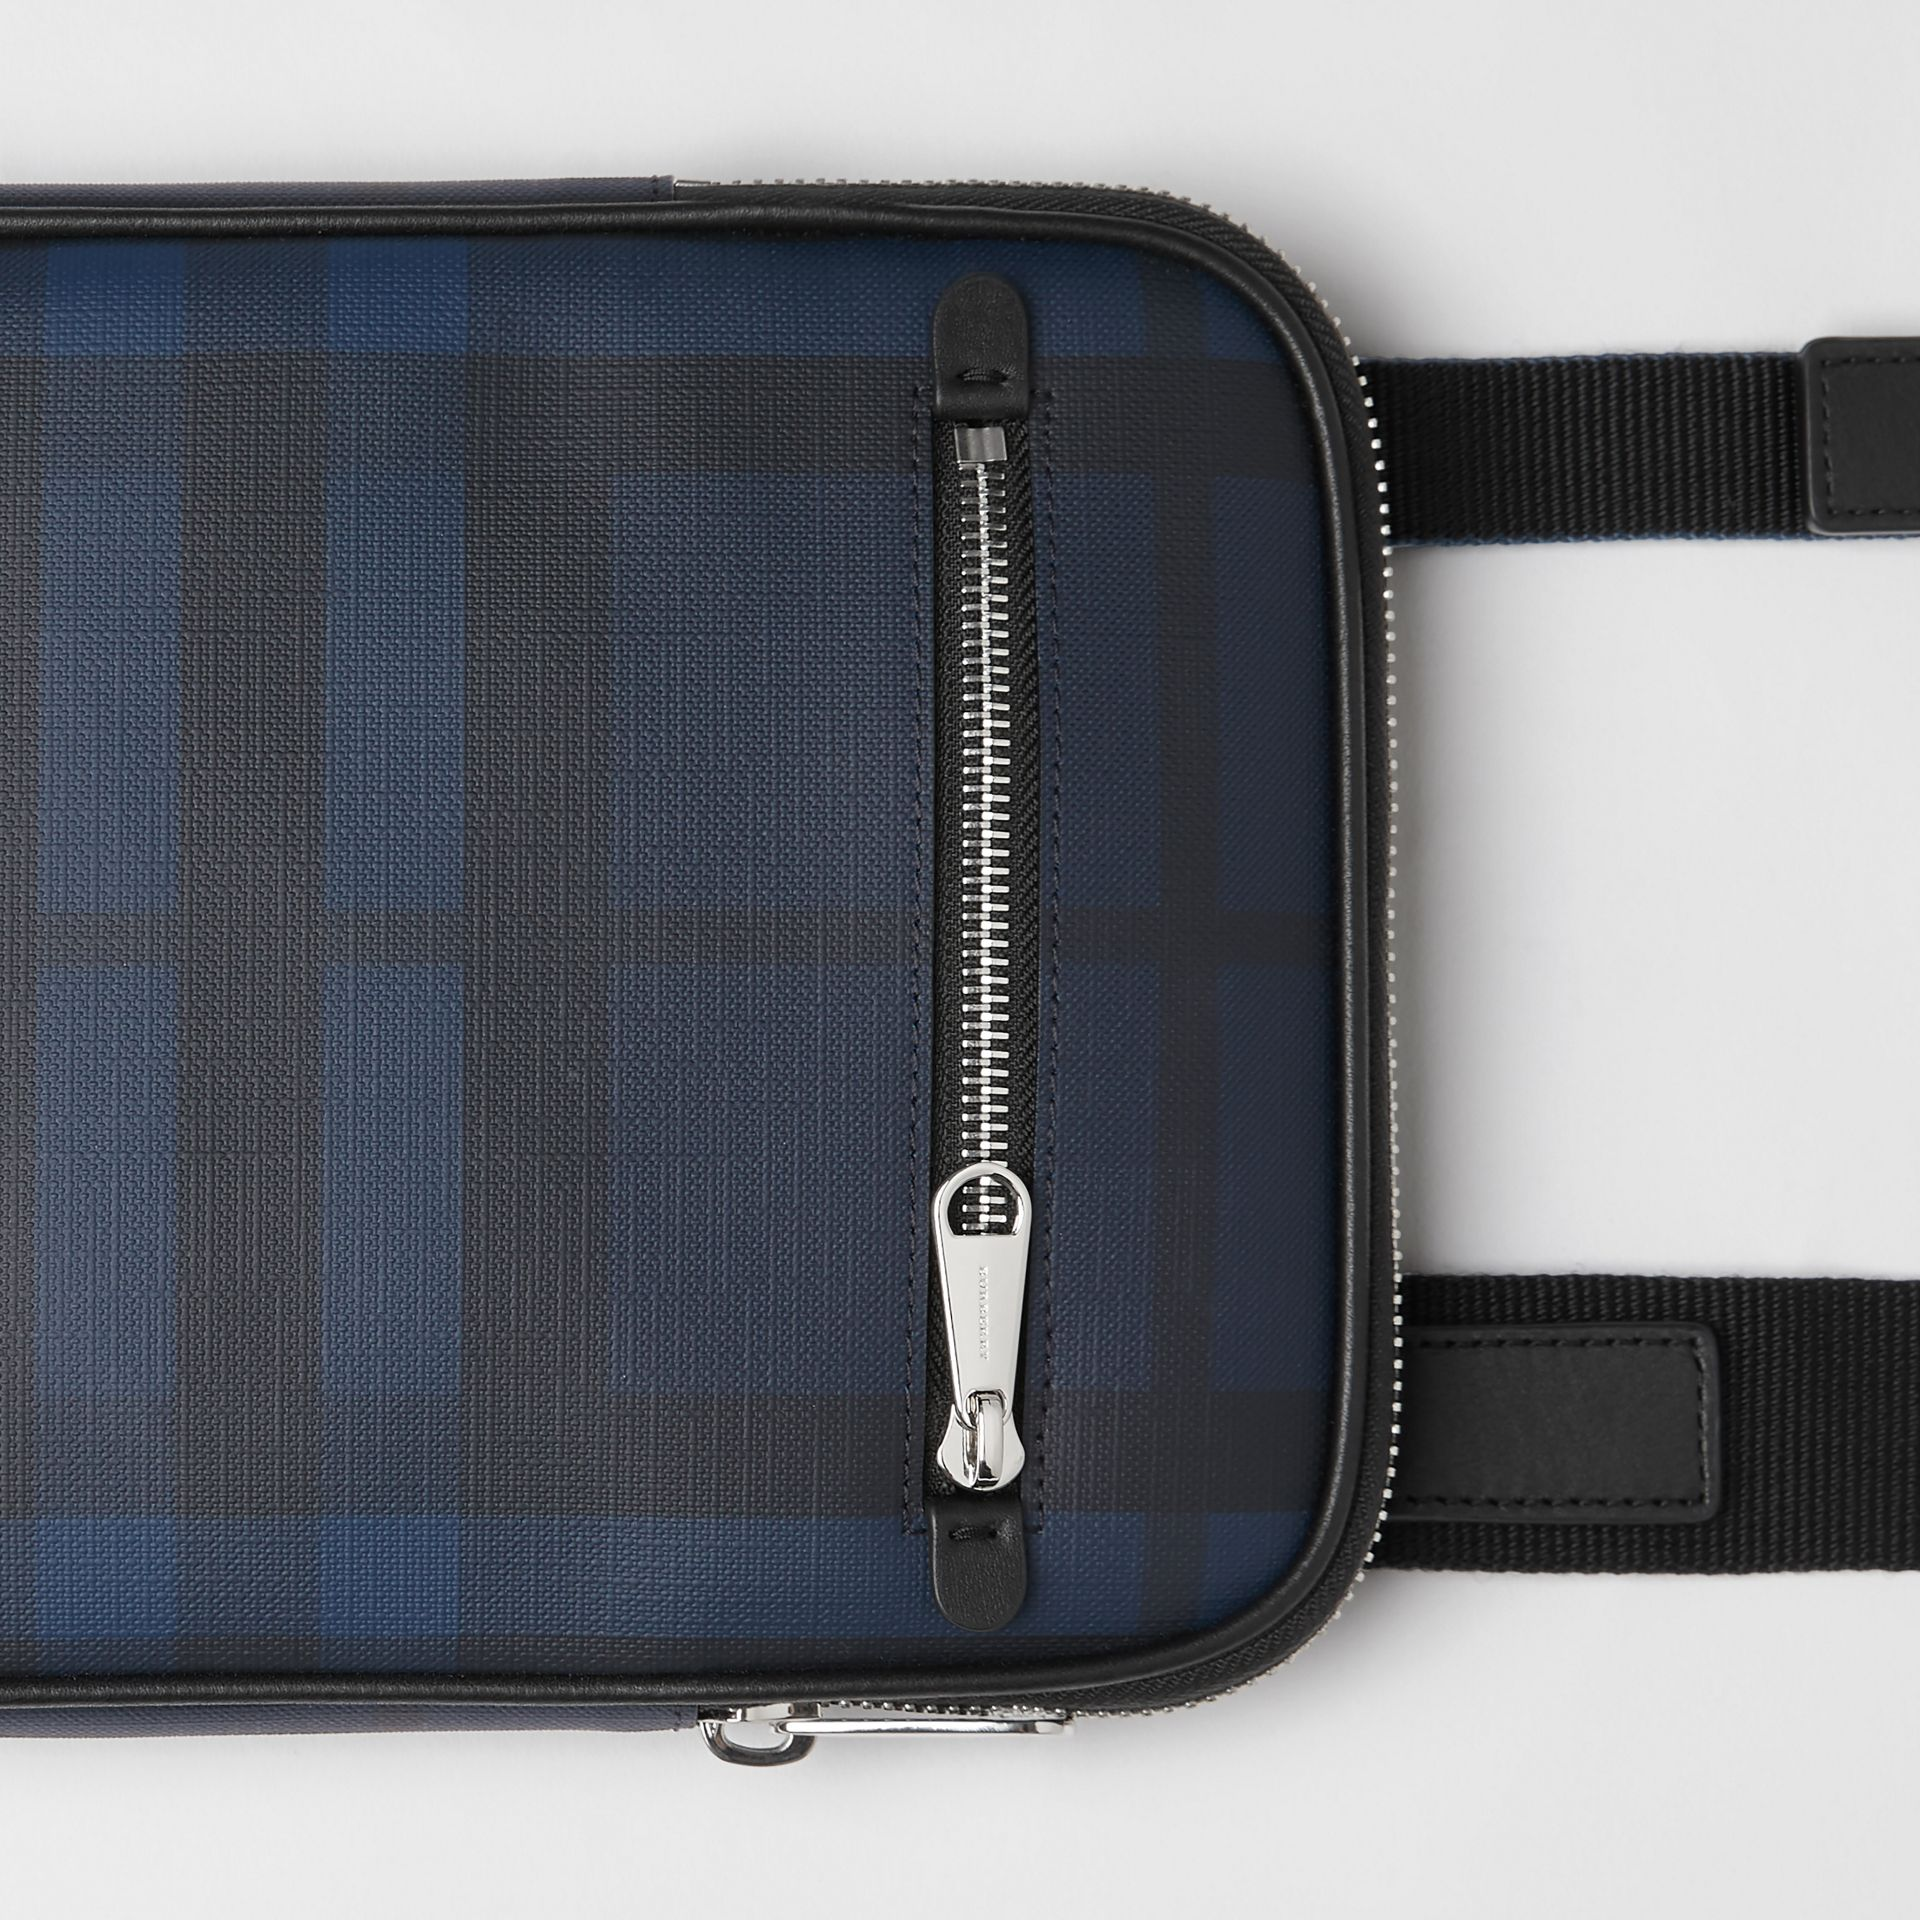 Slim London Check Crossbody Bag in Navy/black - Men | Burberry Hong Kong S.A.R - gallery image 1